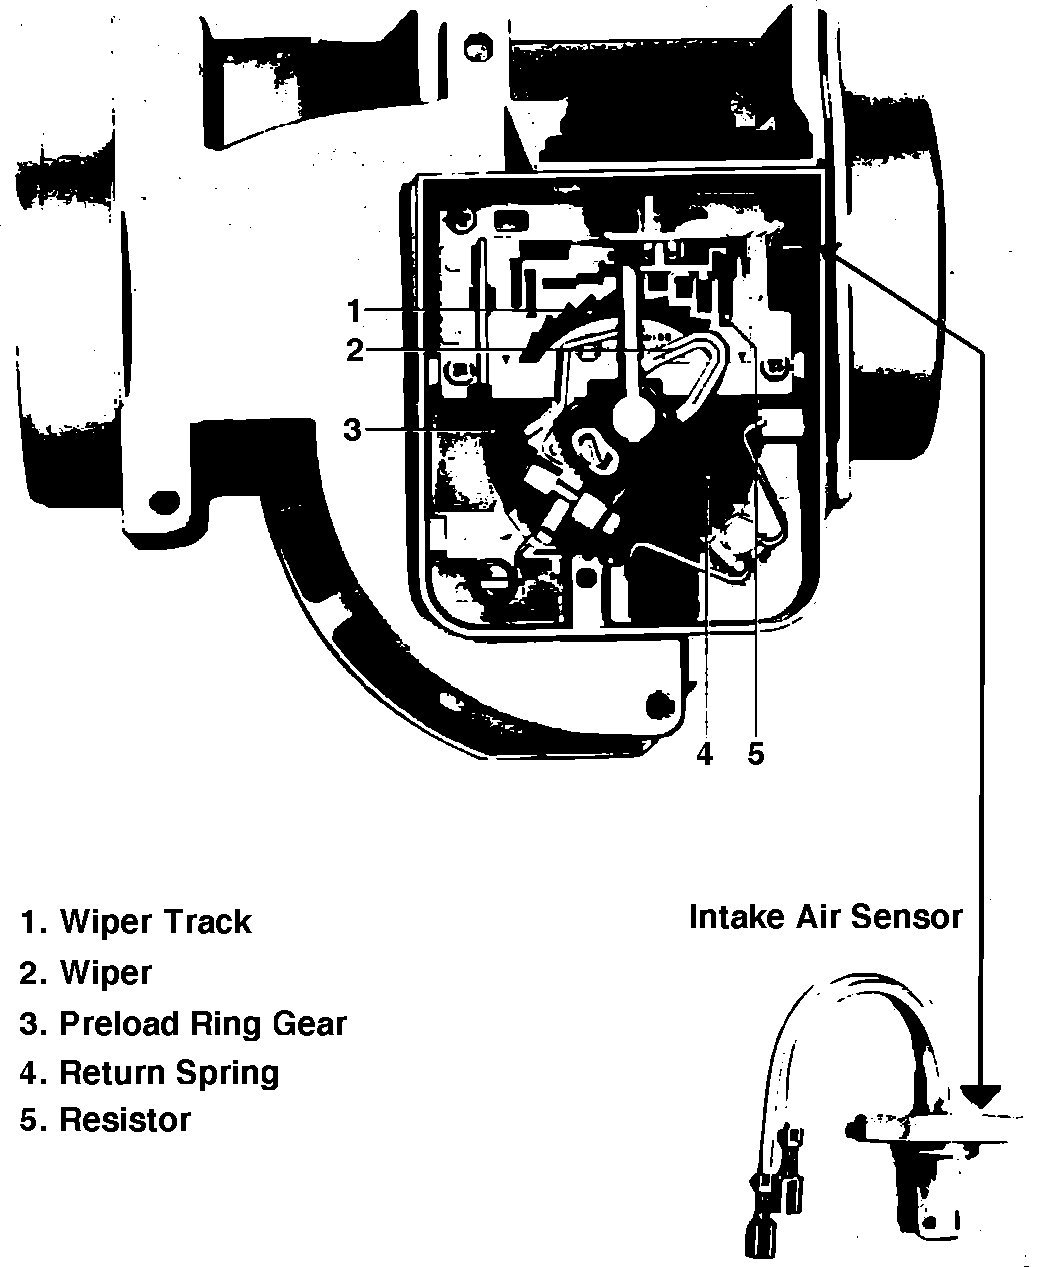 E34 530i Emission Diagram Fuse Box I Have A E It Is Running And Throwing Code 1056x1267